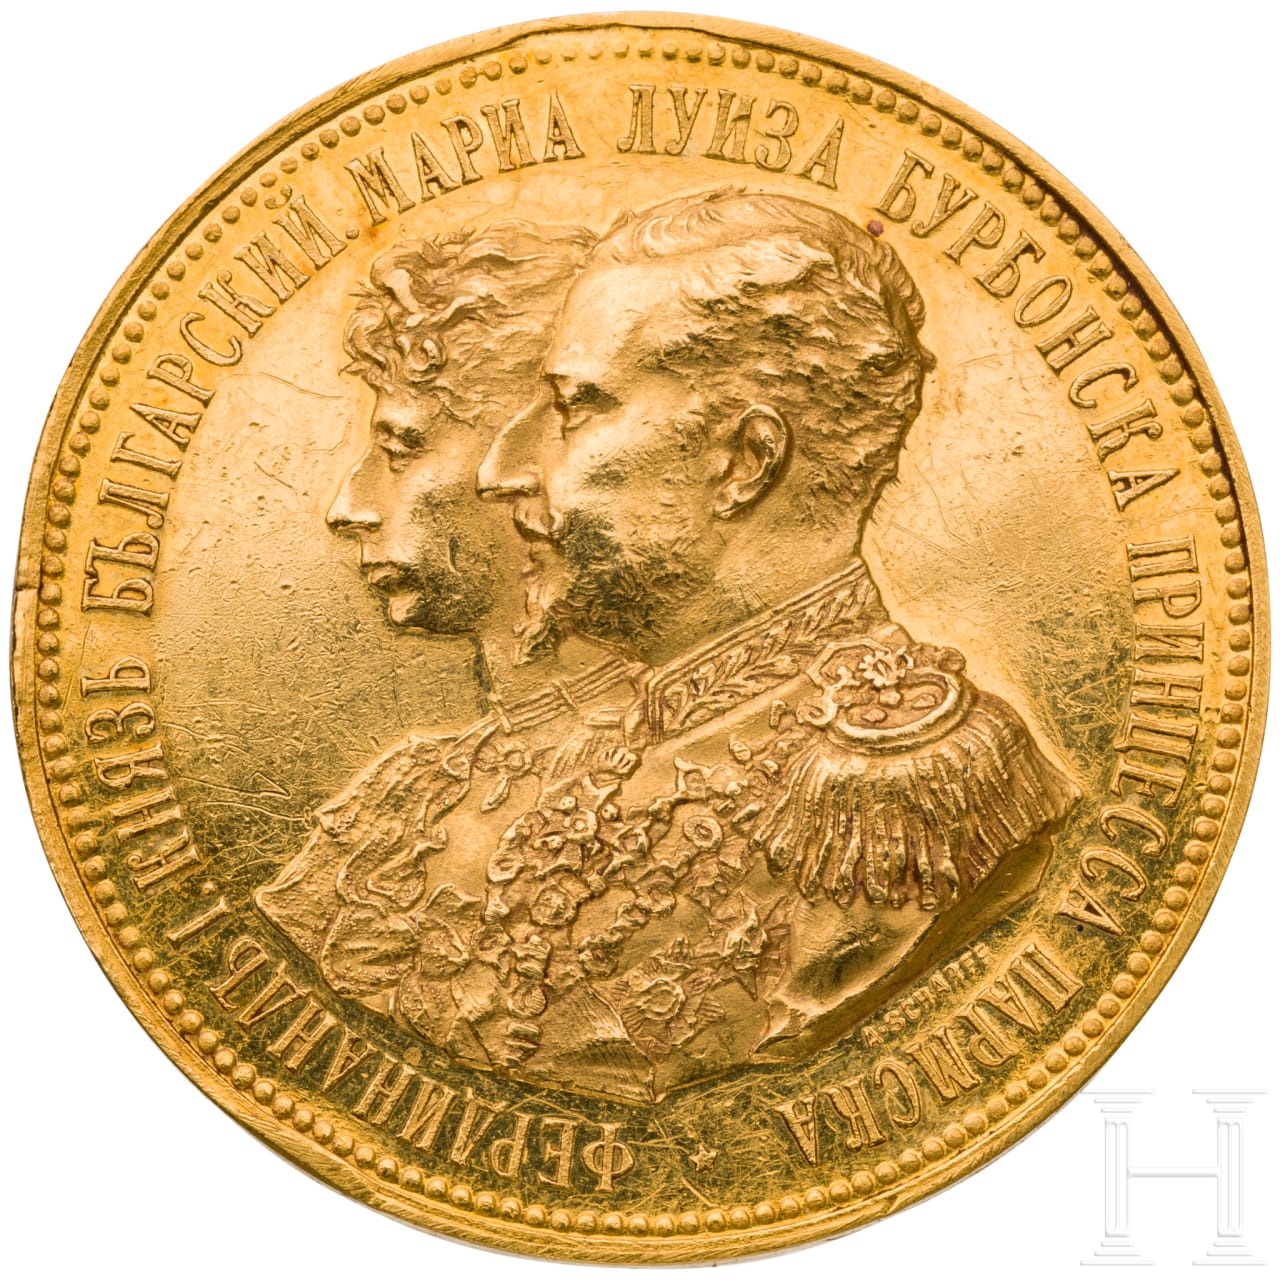 Bulgarian Tsar Ferdinand I (1887 – 1918), a gold medal commemorating his marriage to Marie Louise of Bourbon-Parma, dated 1893